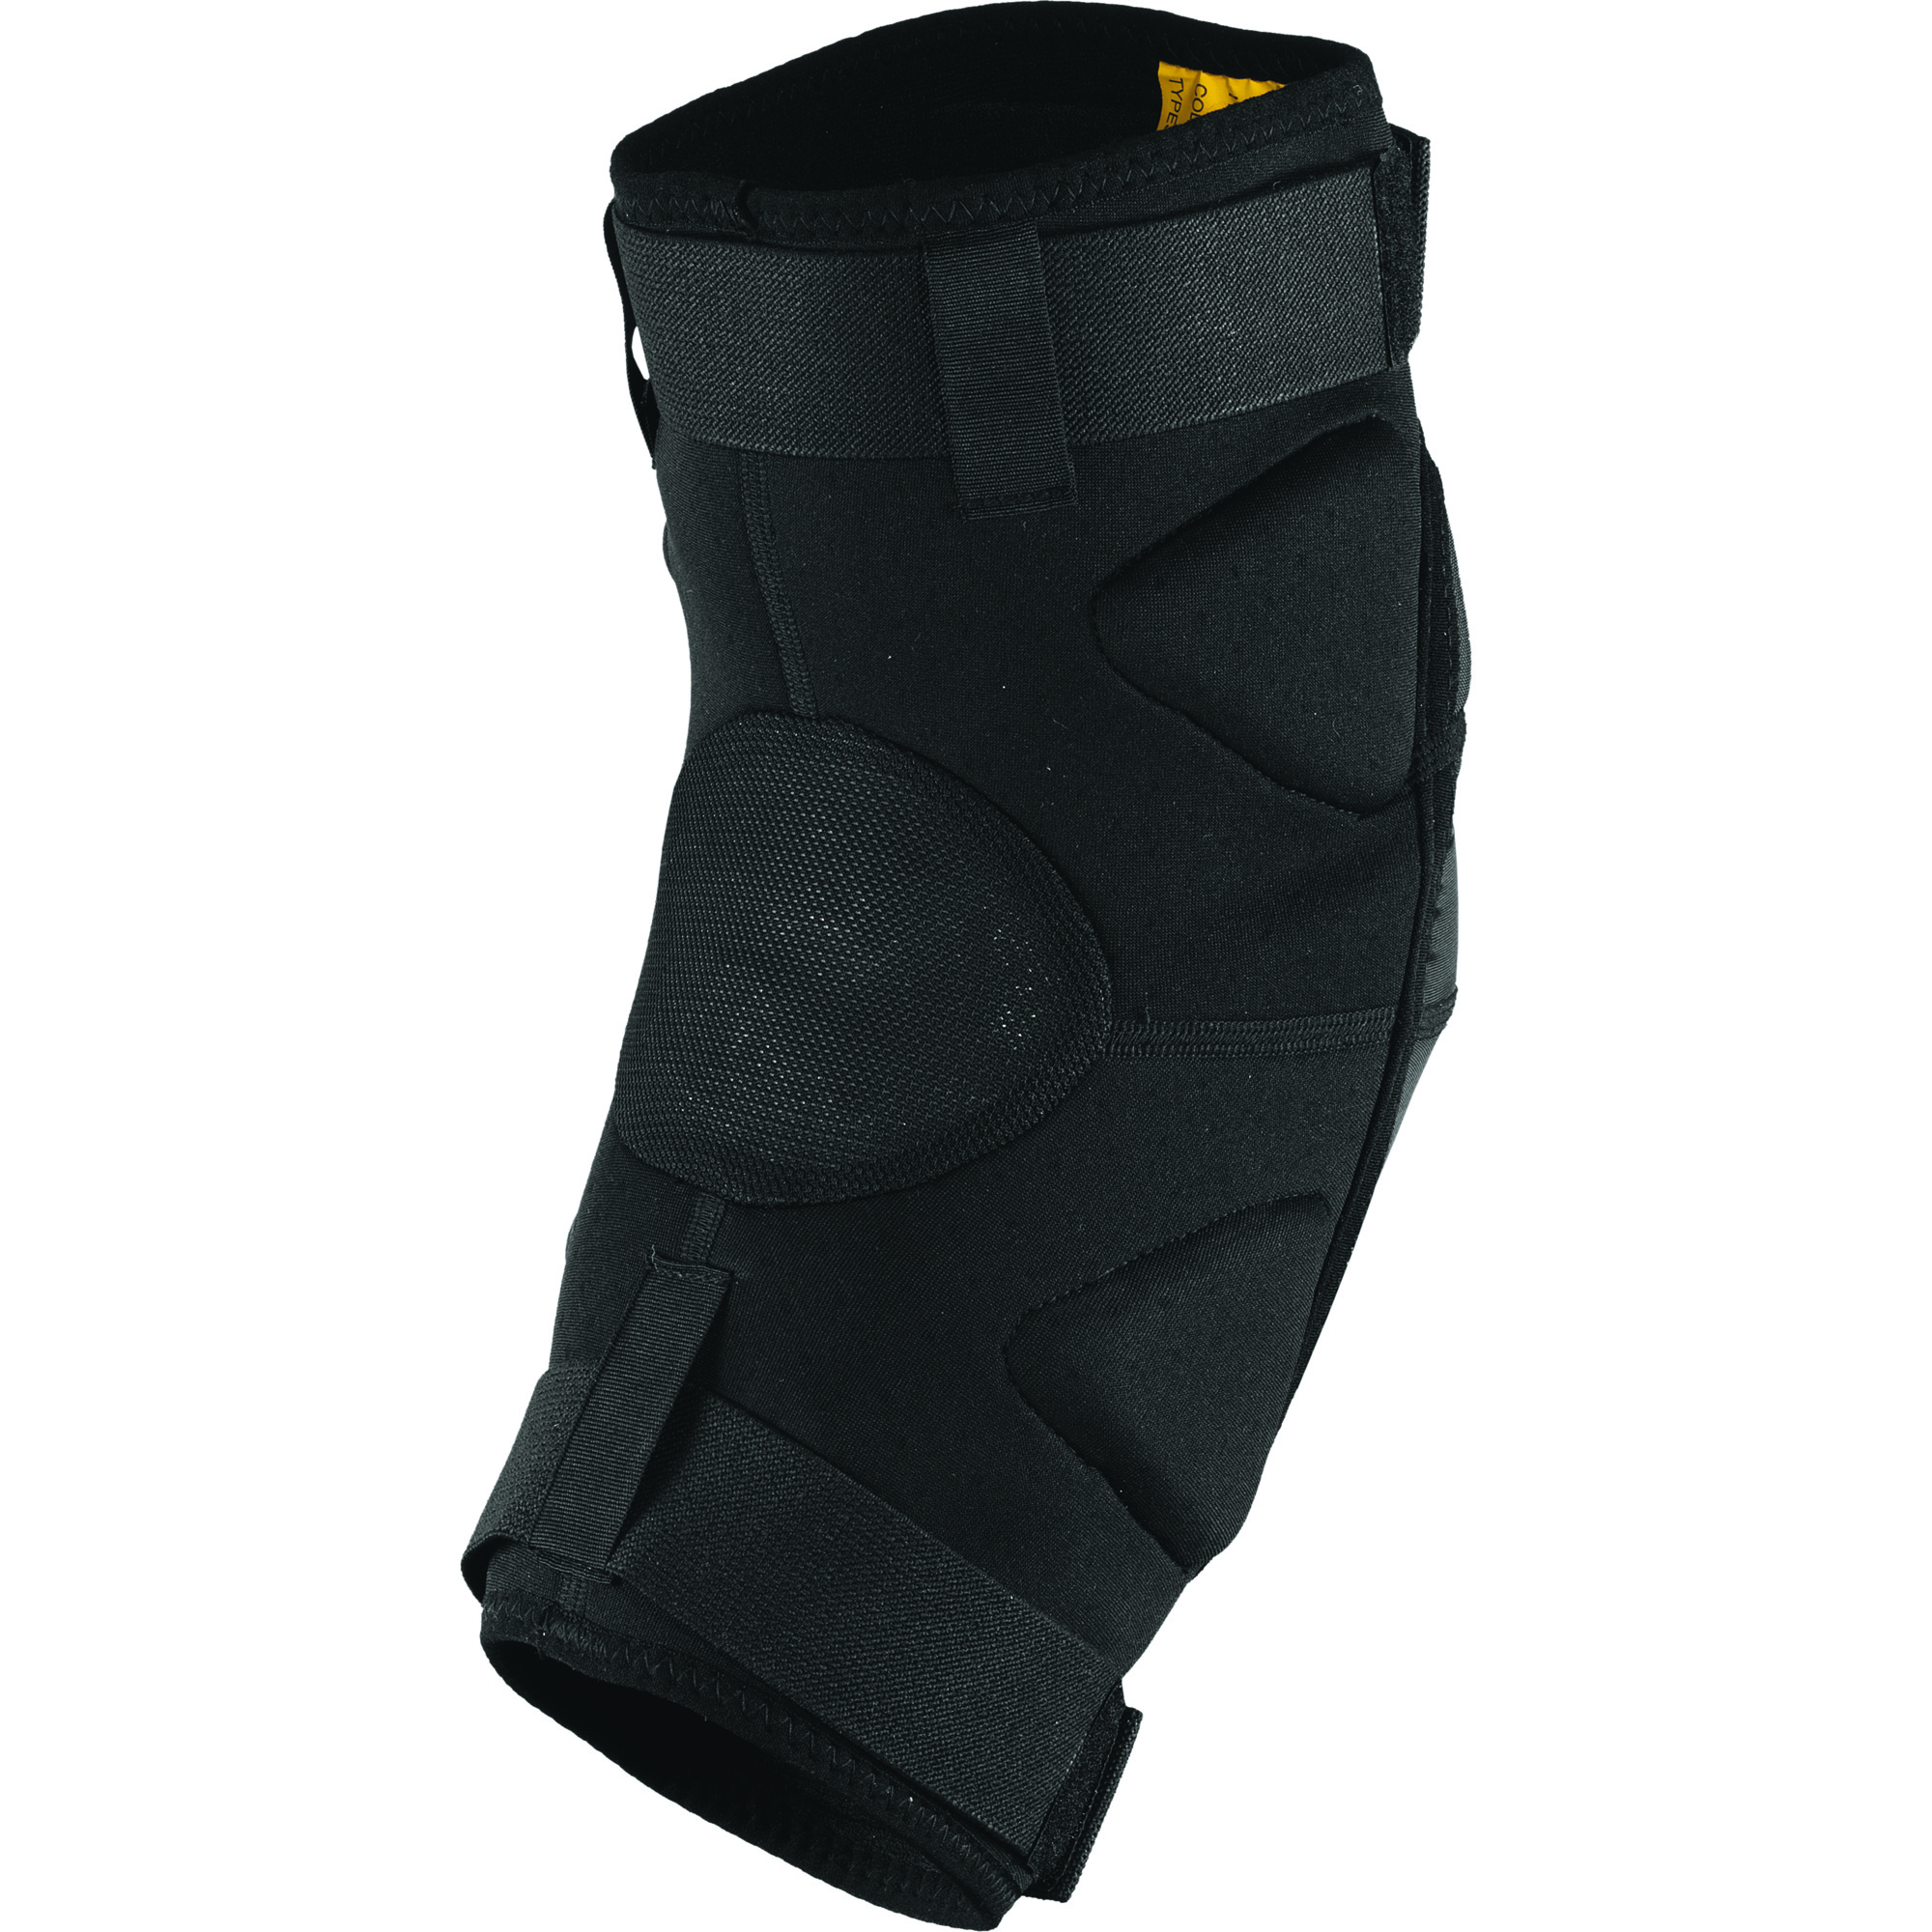 Knee Guards Rocket II